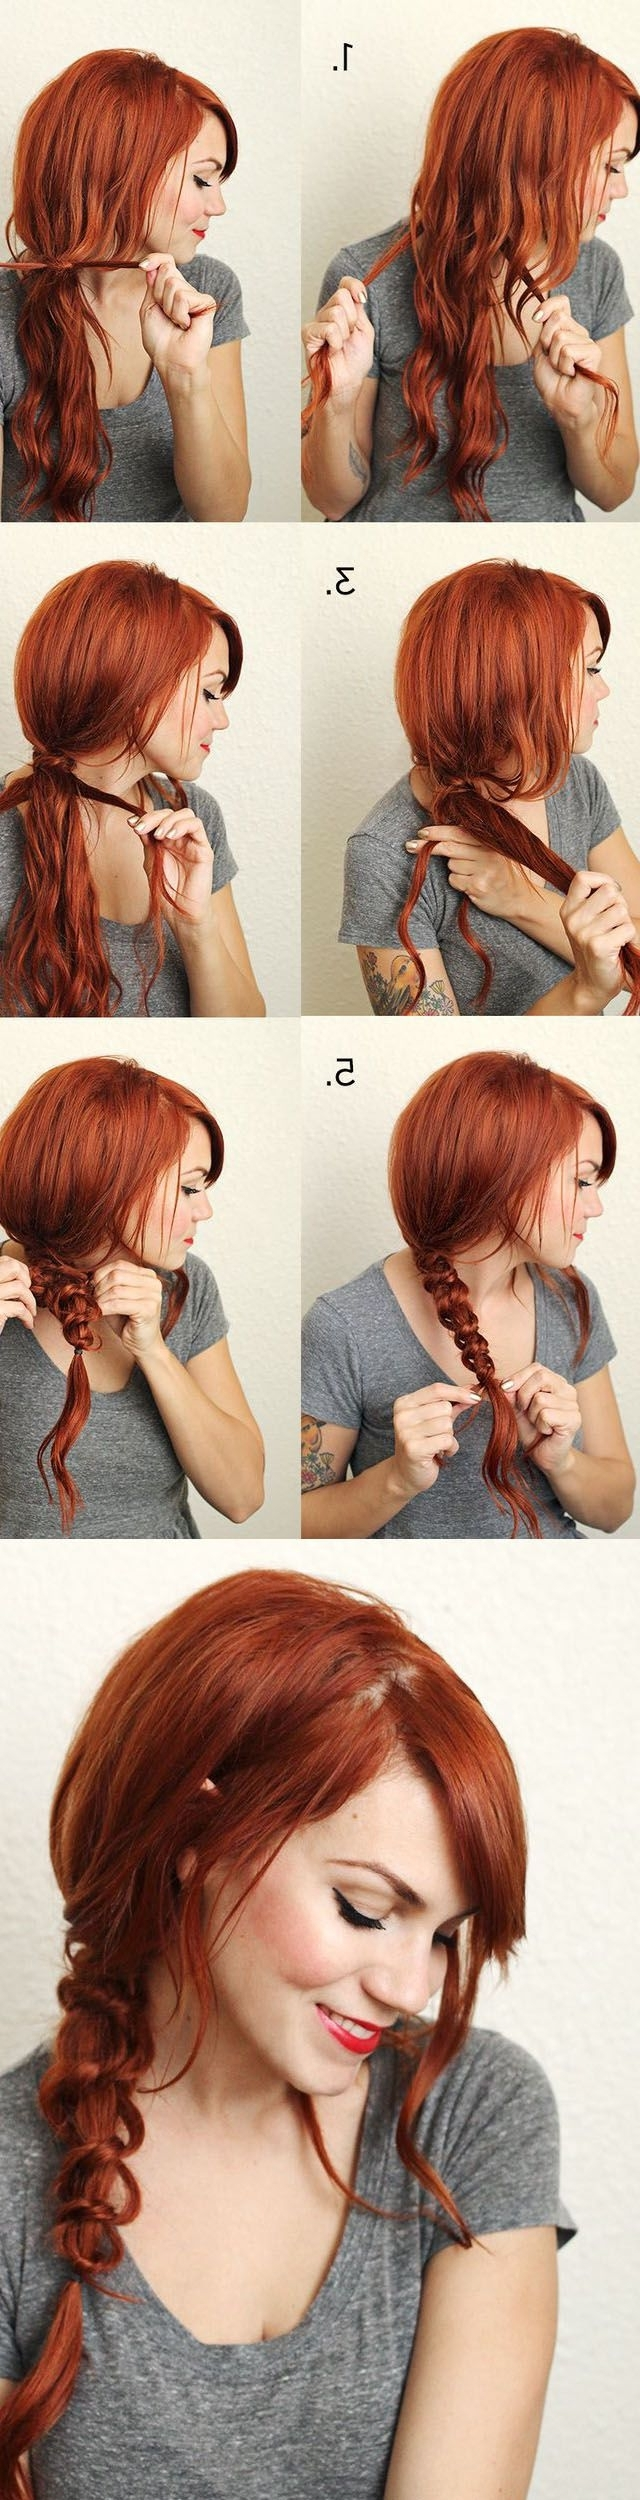 30 Messy Braid Hairstyles That You Will Love – Page 6 Of 30 – Hairsilver Pertaining To Most Recent Messy Braid Hairstyles (View 11 of 15)